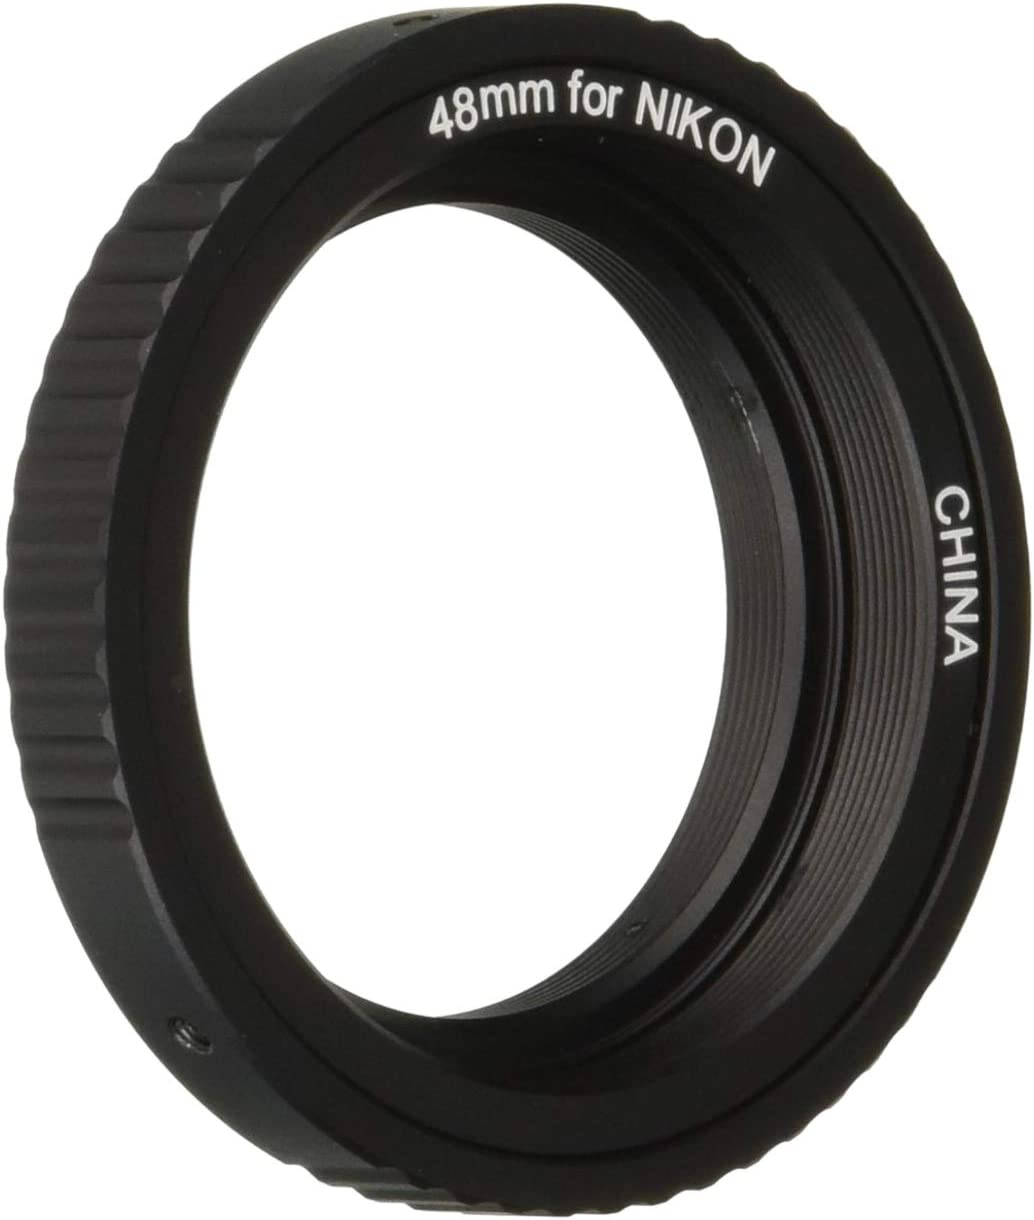 for Canon M48-EOS Lens Adapter Ring to Telescope Eyepiece for Nikon AI for Canon EOS Camera M480.75 Lens Mount Adapter Ring